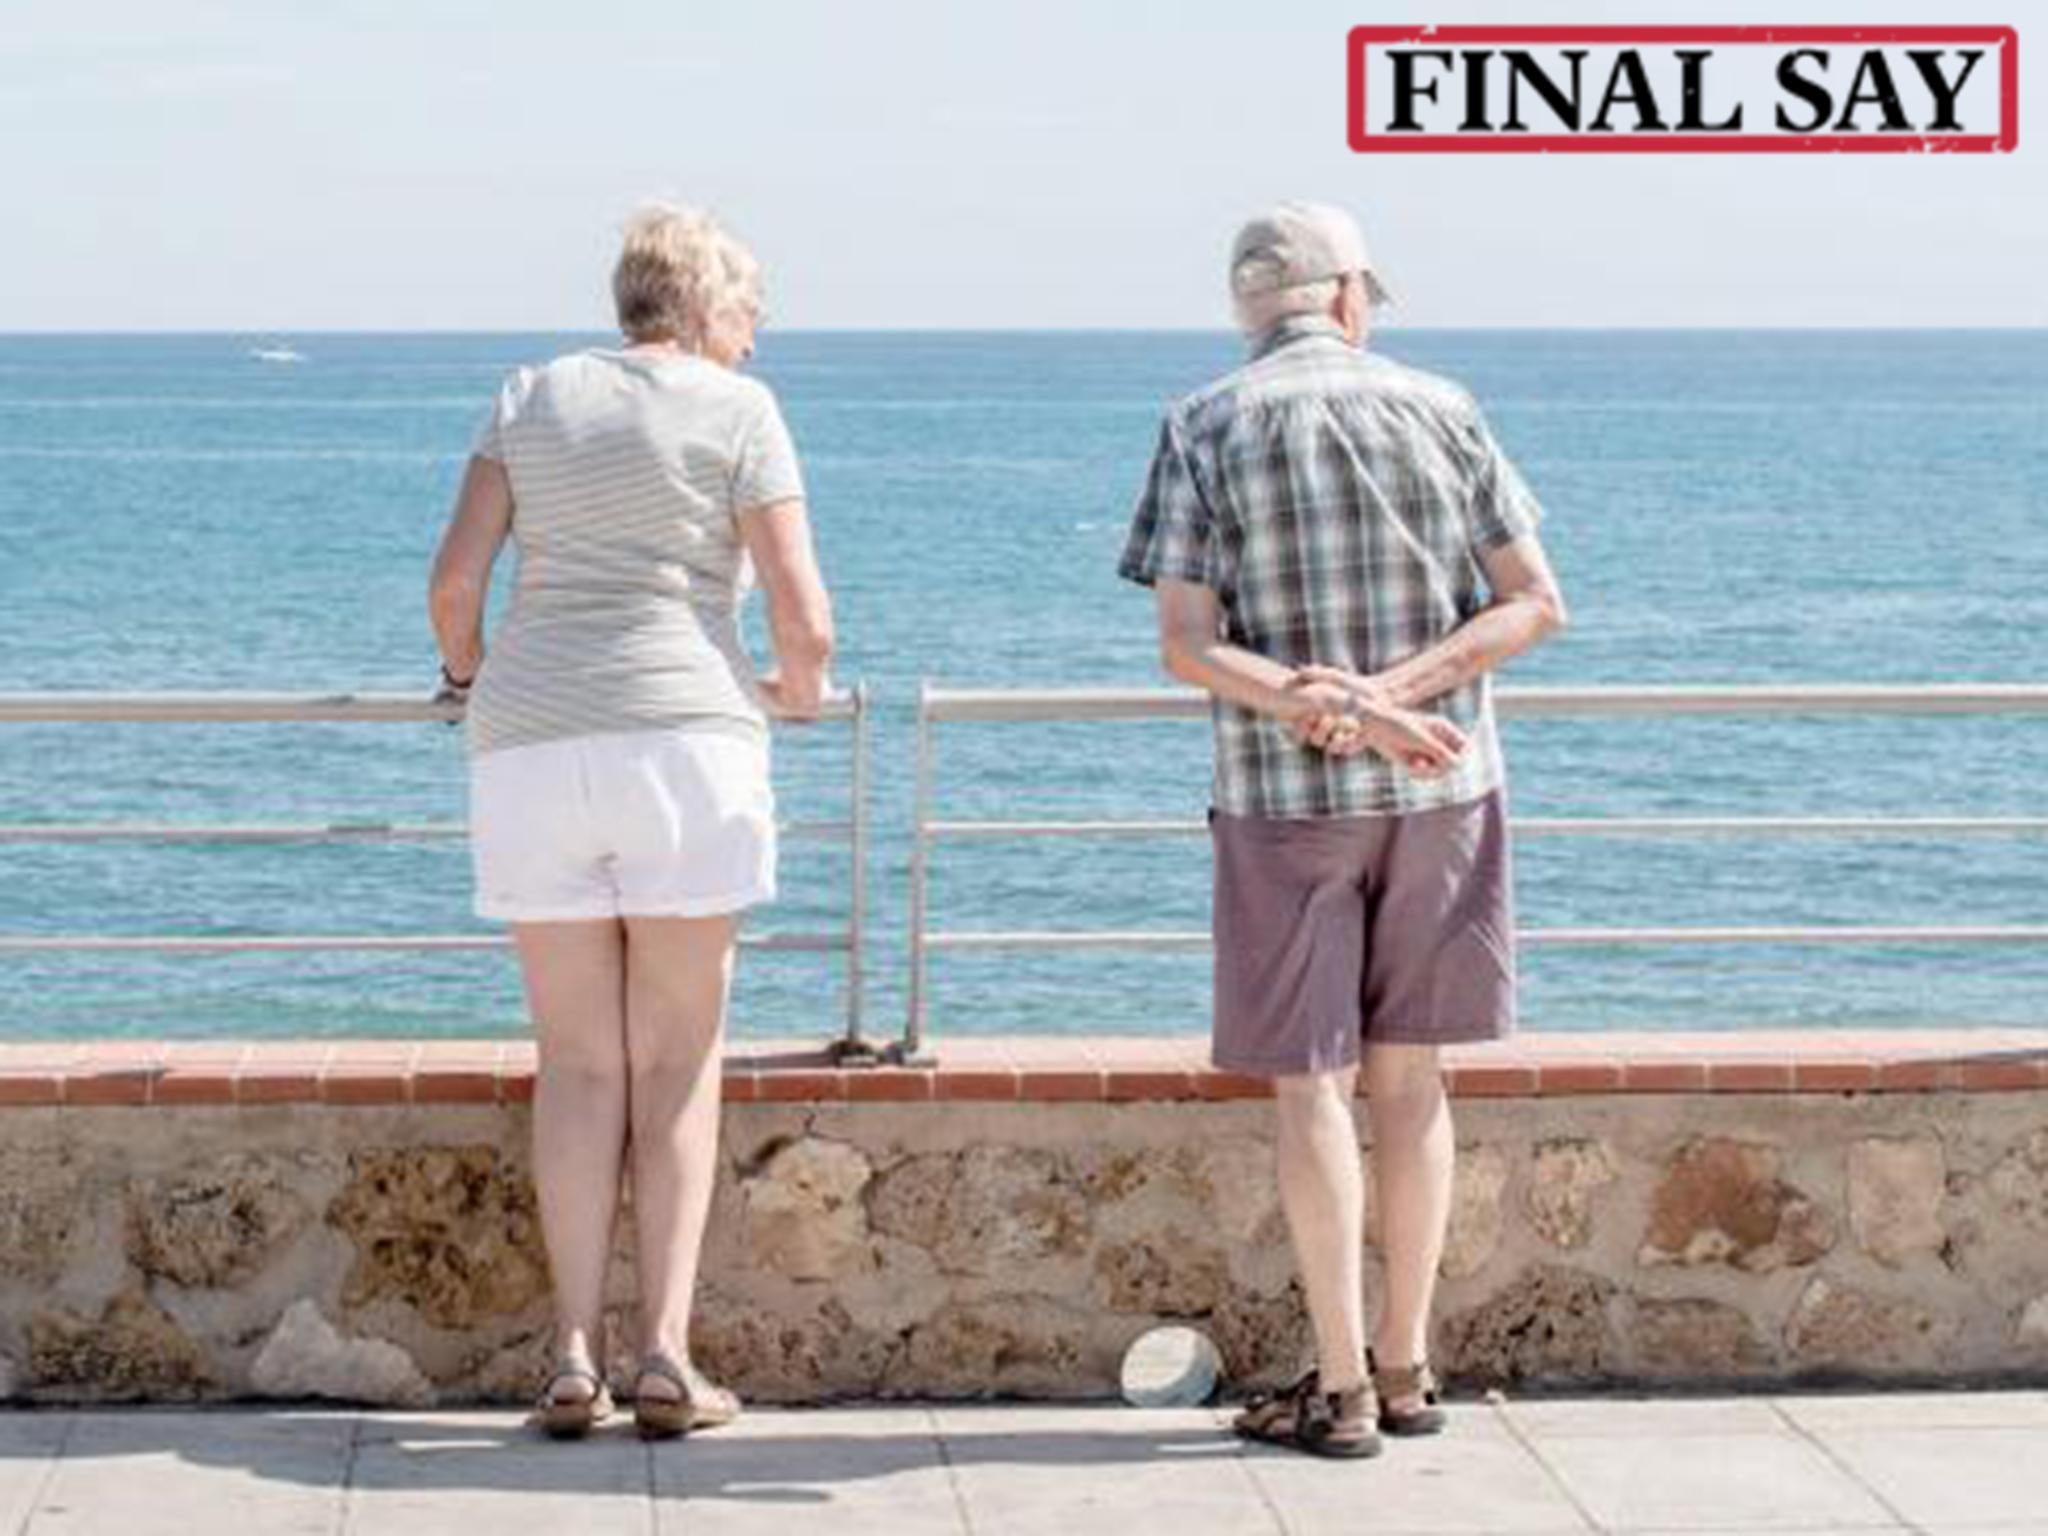 No-deal Brexit will make it 'illegal' to pay pensions to retired Bri…